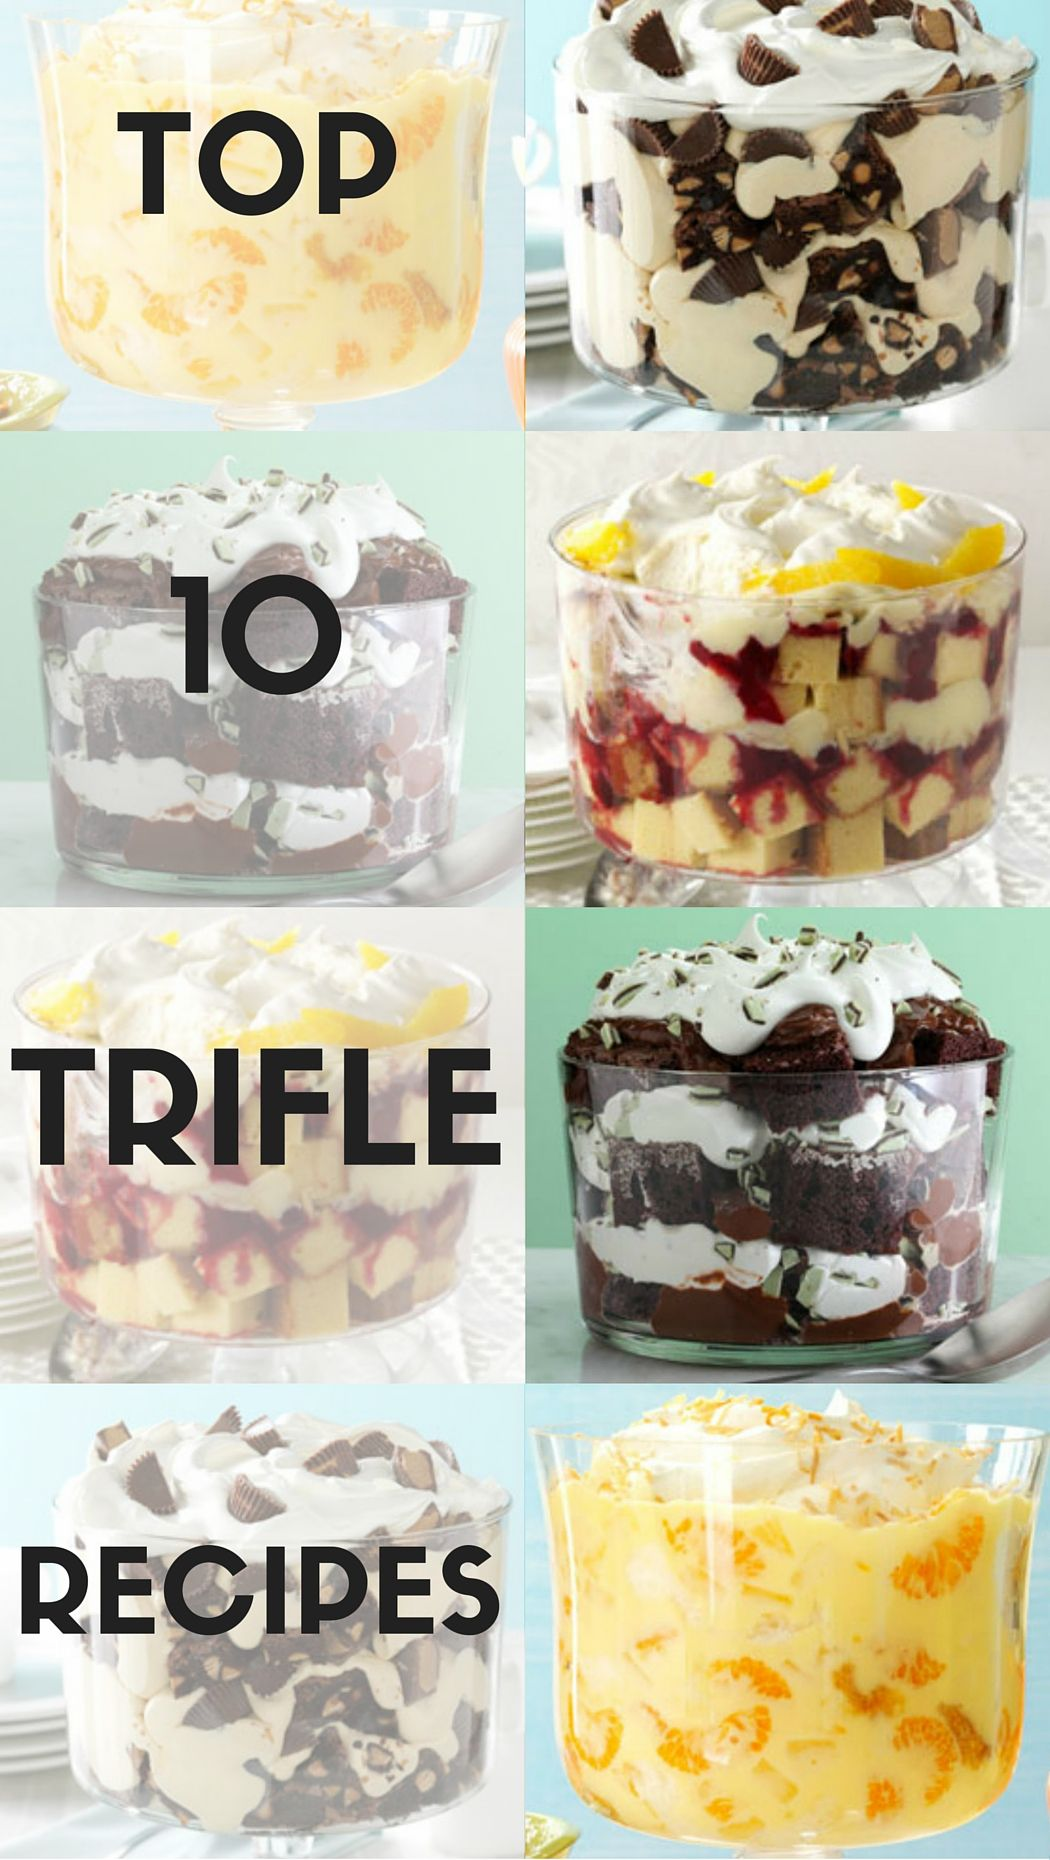 Our Top 10 Trifle Recipes #trifledesserts